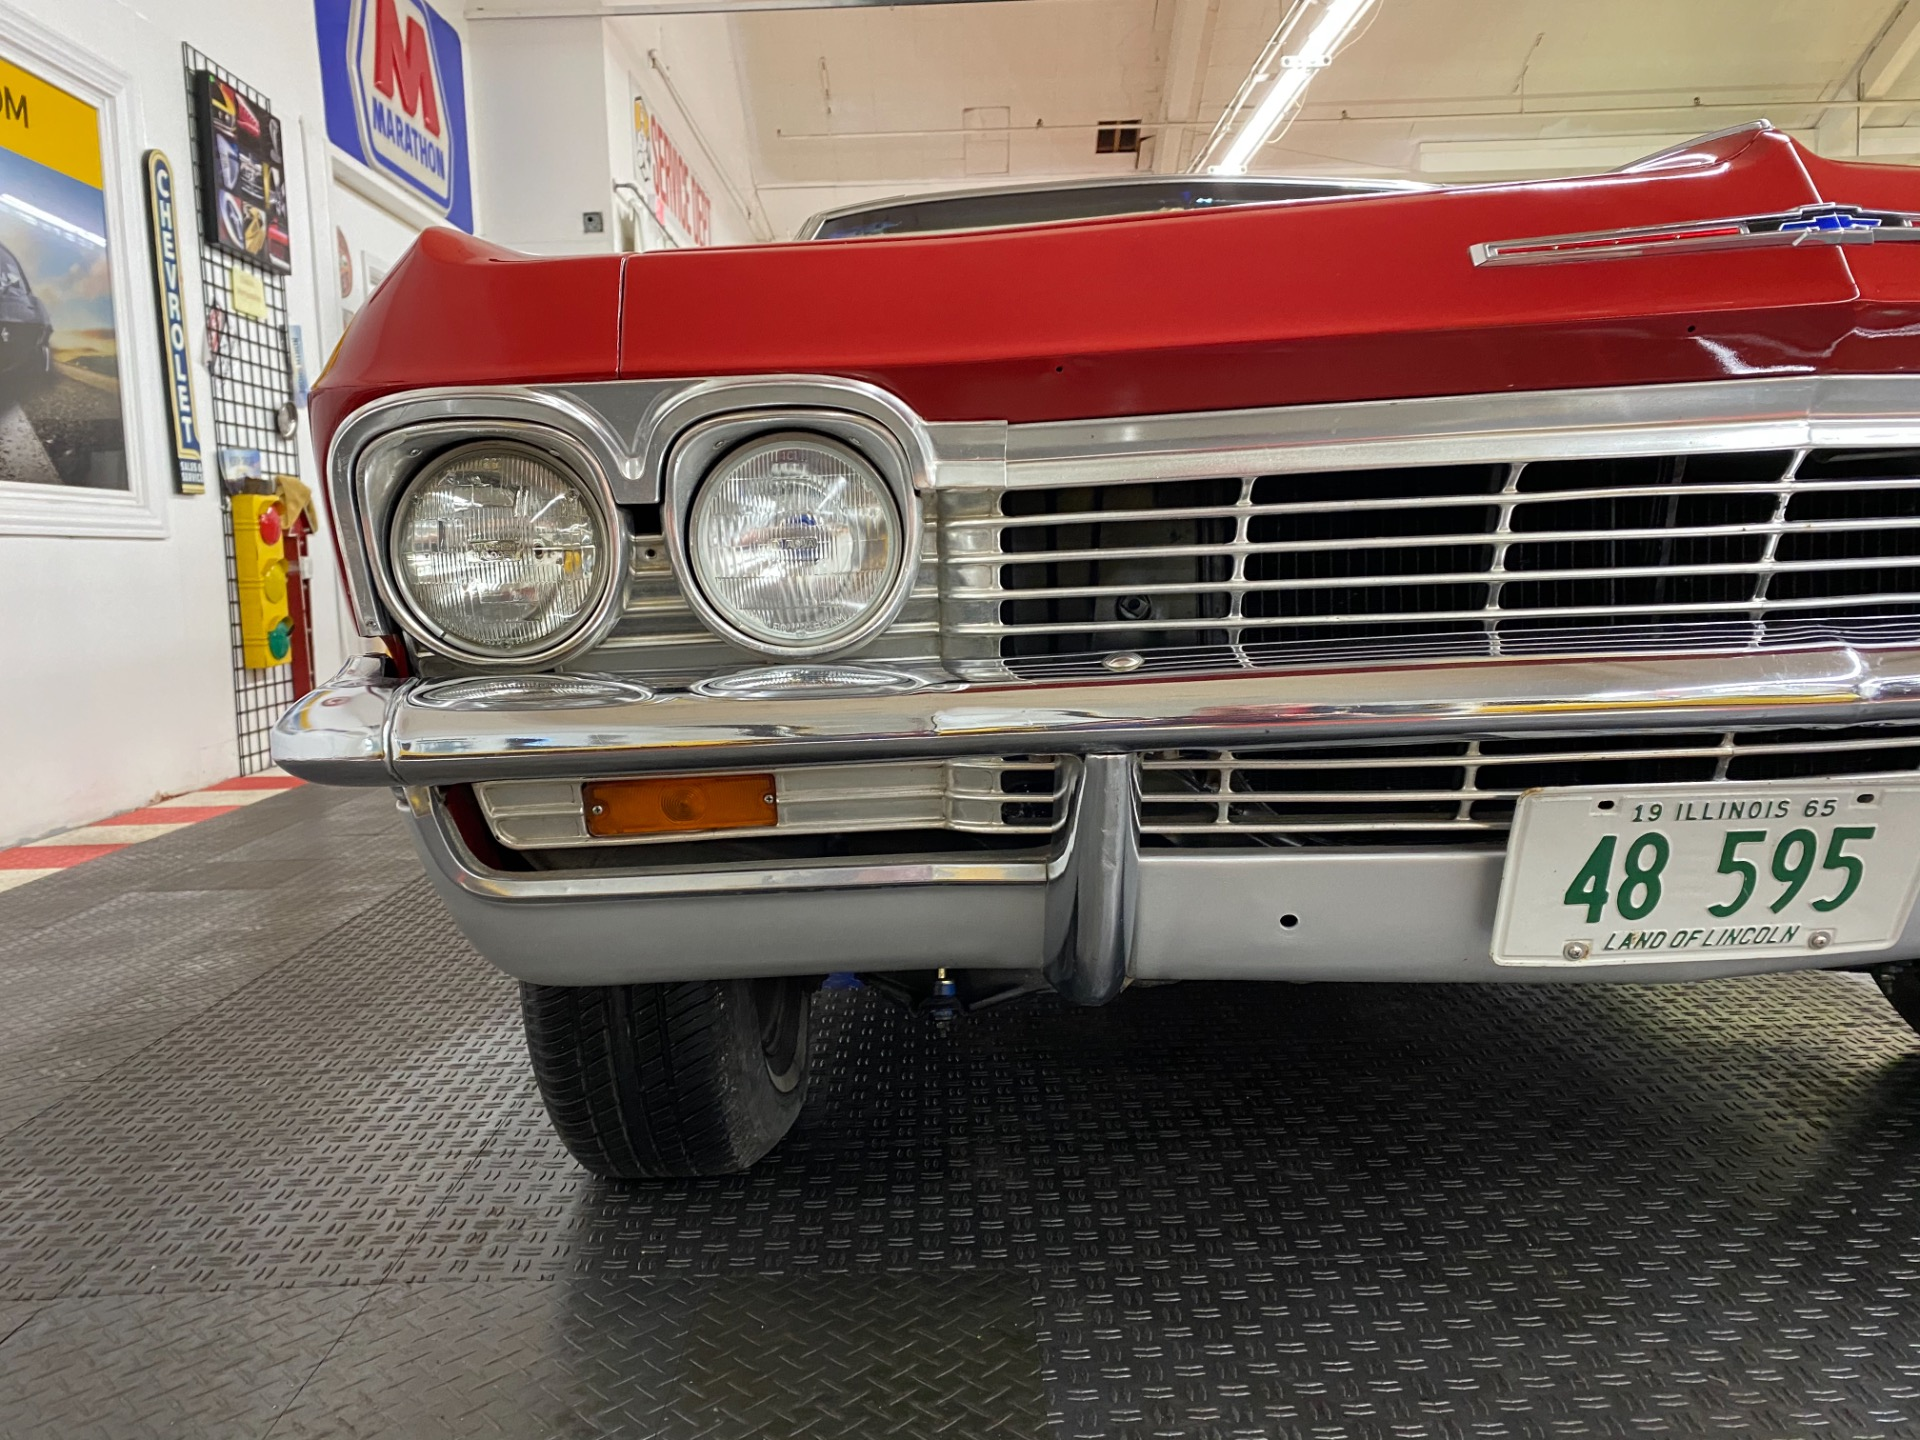 Used 1965 Chevrolet Impala - SUPER SPORT CONVERTIBLE - 454 C.I. ENGINE - 4 SPEED - SEE VIDEO | Mundelein, IL